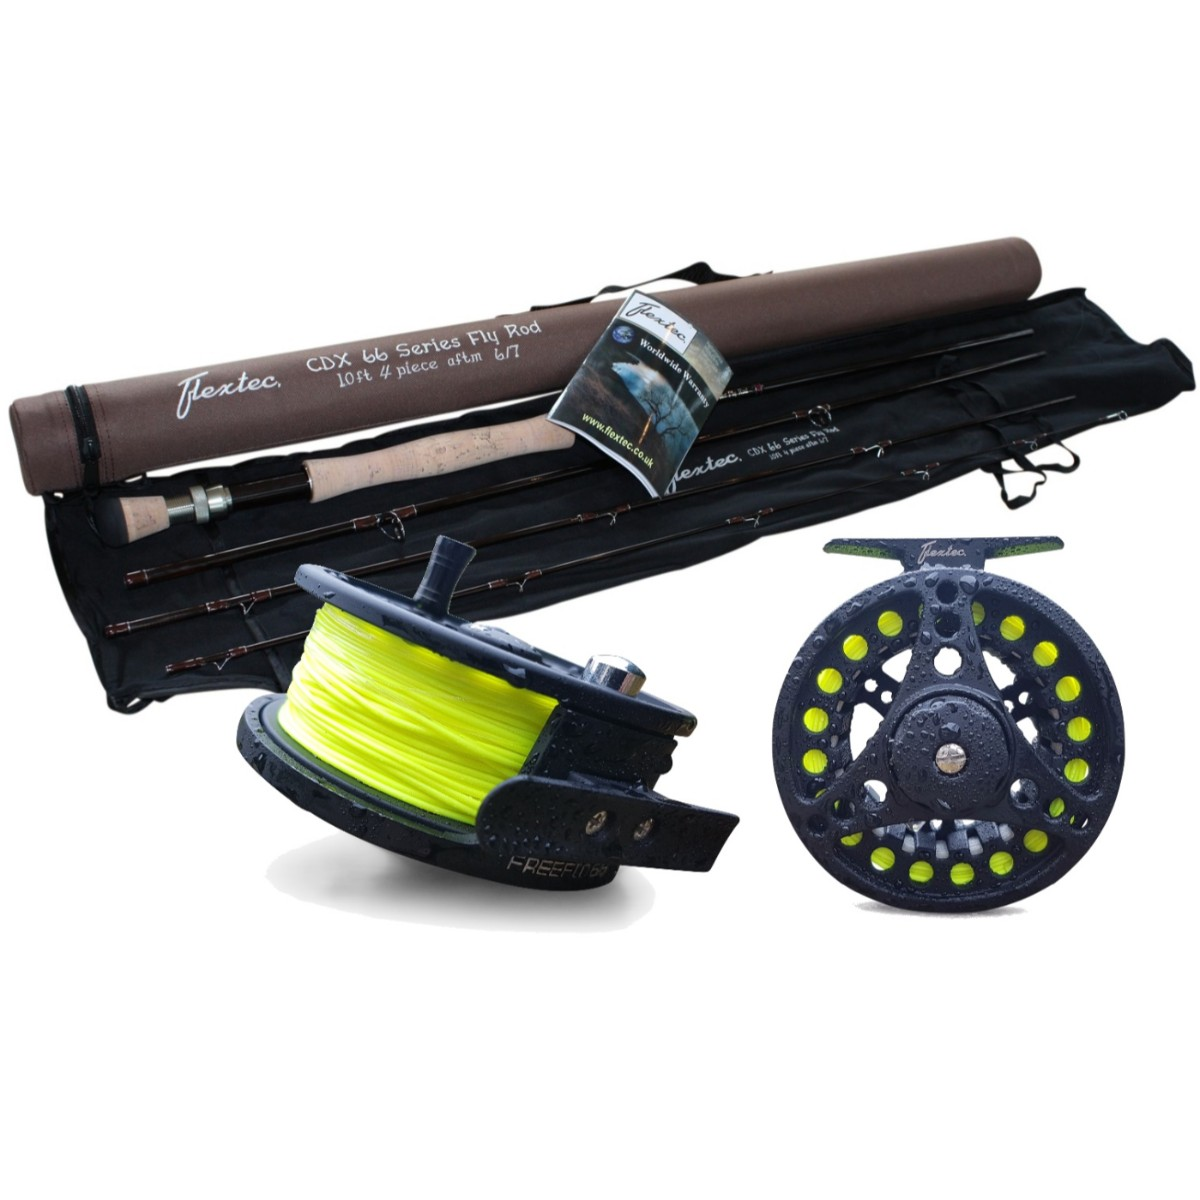 Flextec-Carbon-Fibre-Fly-Fishing-Rod-kit-with-Fly-Reel-Floating-Line-All-Sizes miniatuur 8